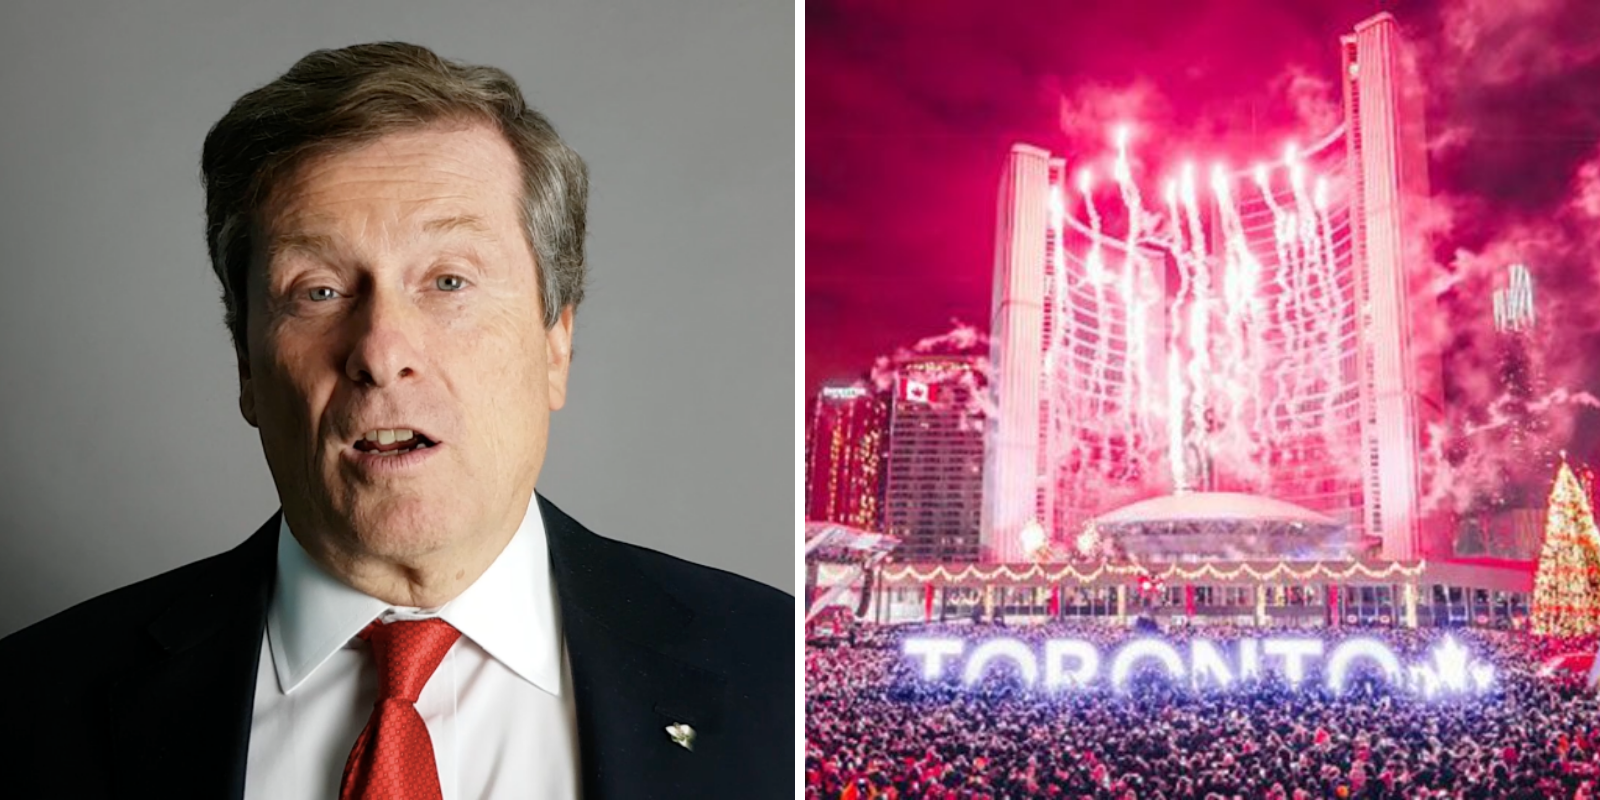 Toronto mayor says cancellation of fall, winter events including New Year's to be expected